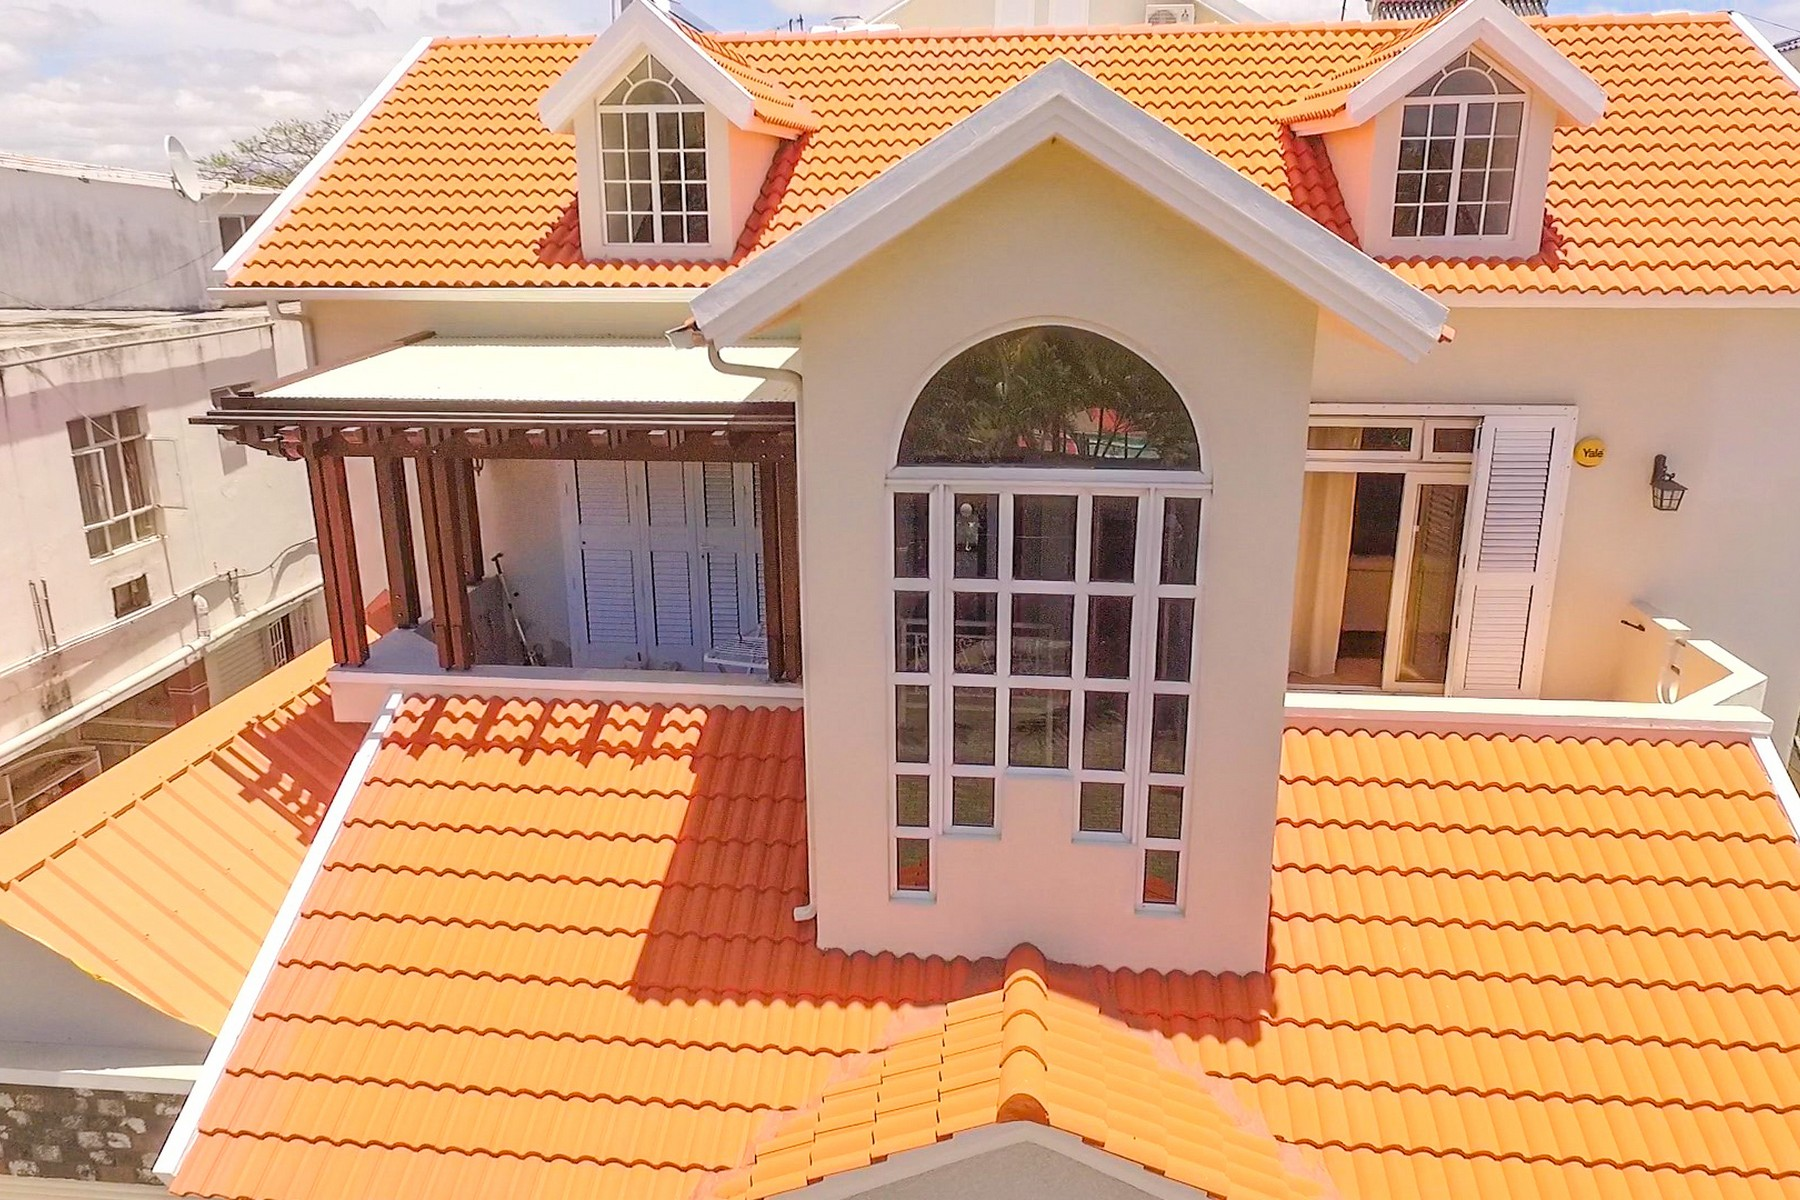 Multi-Family Home for Rent at Jumelée Villa Other Pamplemousses, Pamplemousses Mauritius